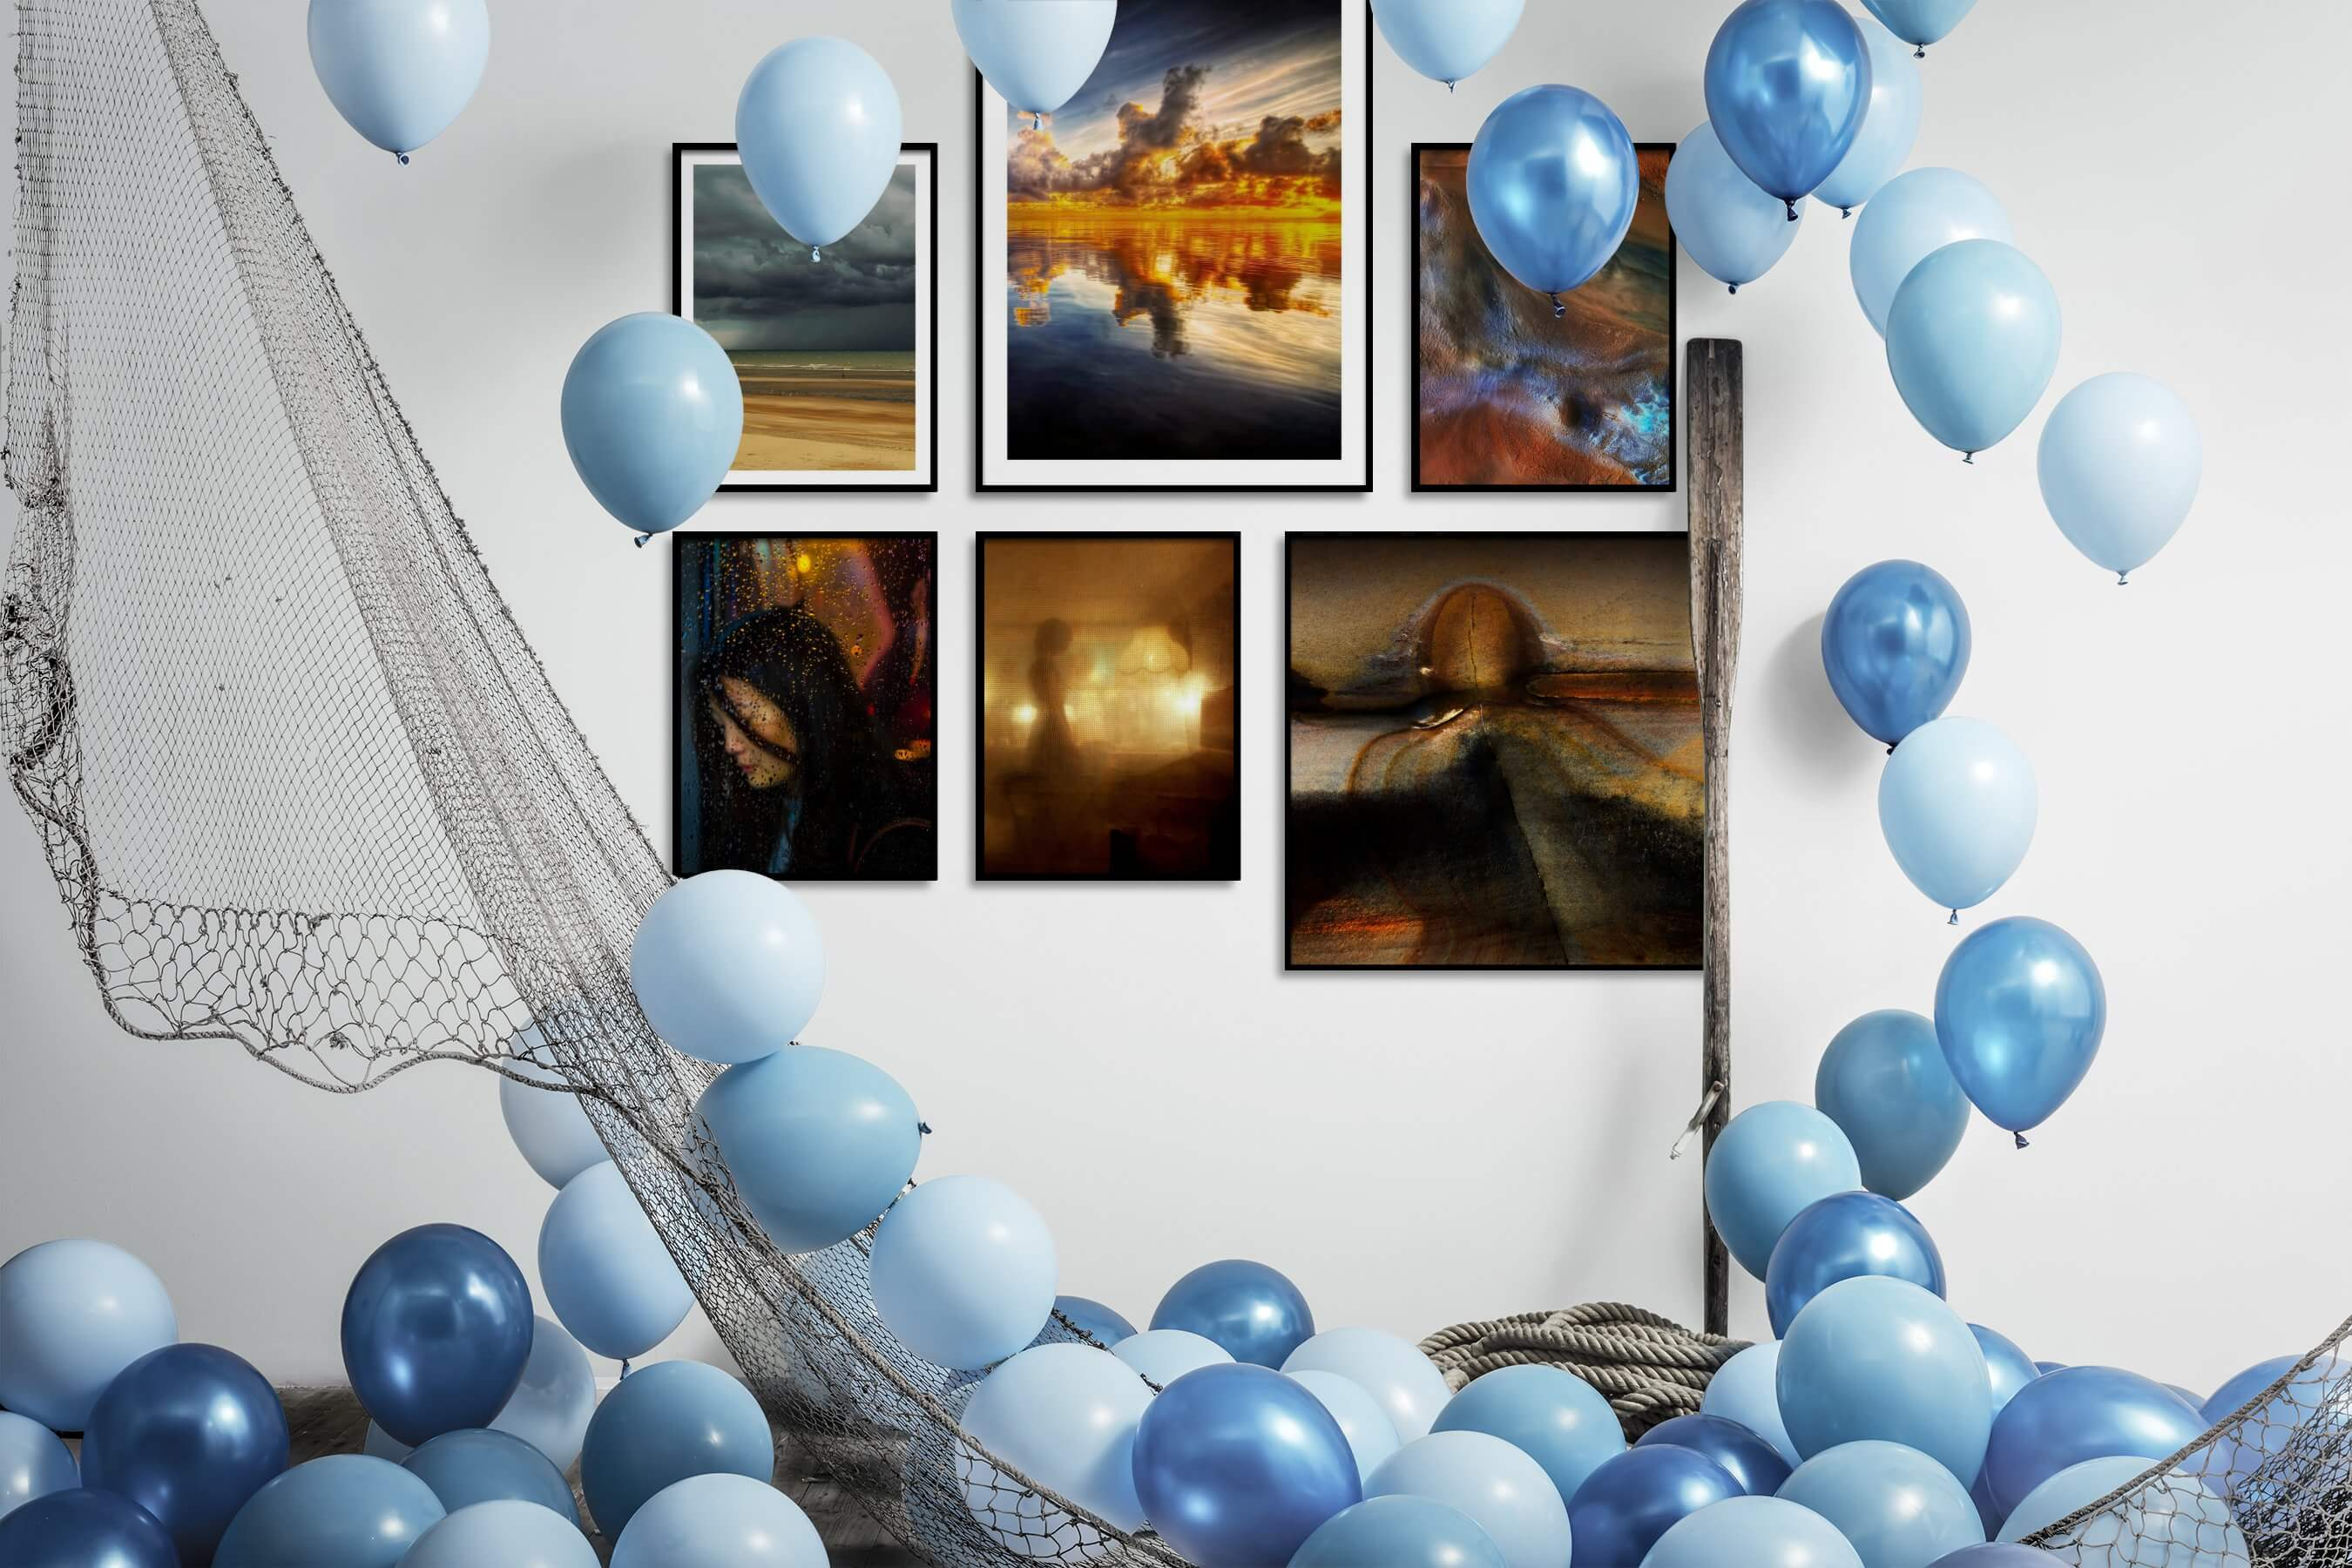 Gallery wall idea with six framed pictures arranged on a wall depicting Beach & Water, For the Moderate, Mindfulness, Fashion & Beauty, Artsy, and Nature